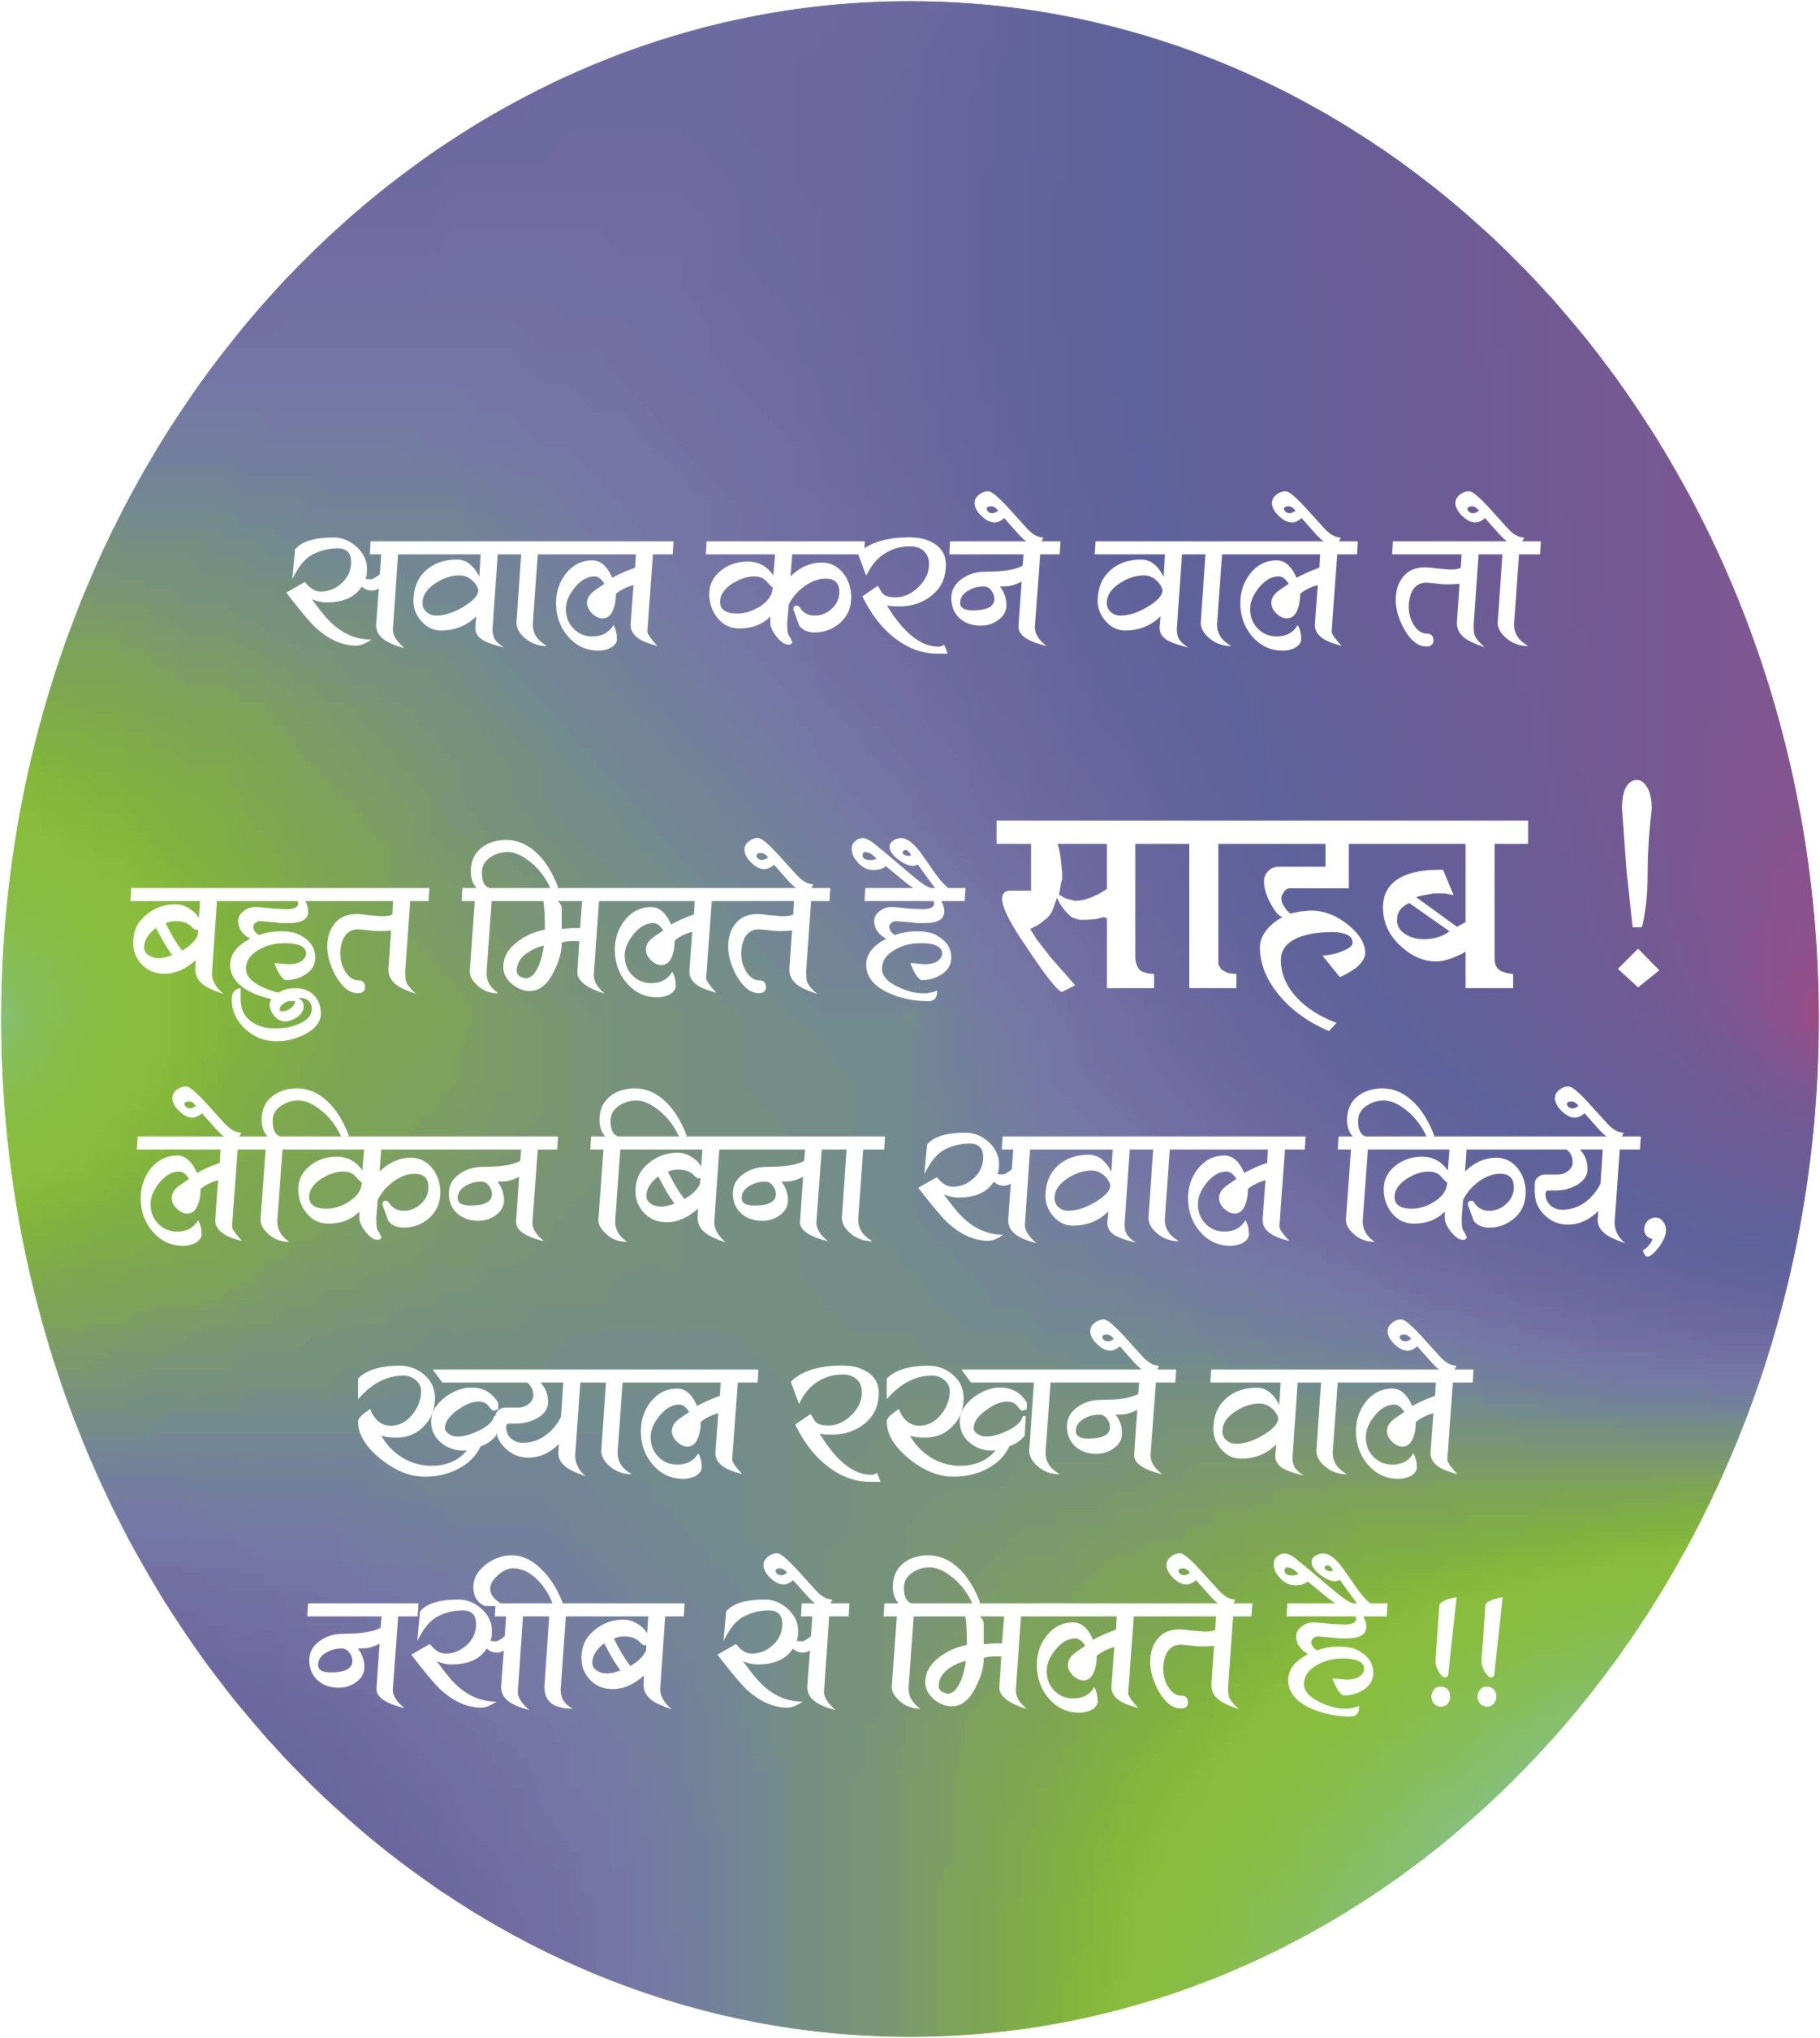 Sawal Karne Wale To Bahut Milte Hai Sahab Good Thoughts Quotes Good Life Quotes Friendship Day Quotes